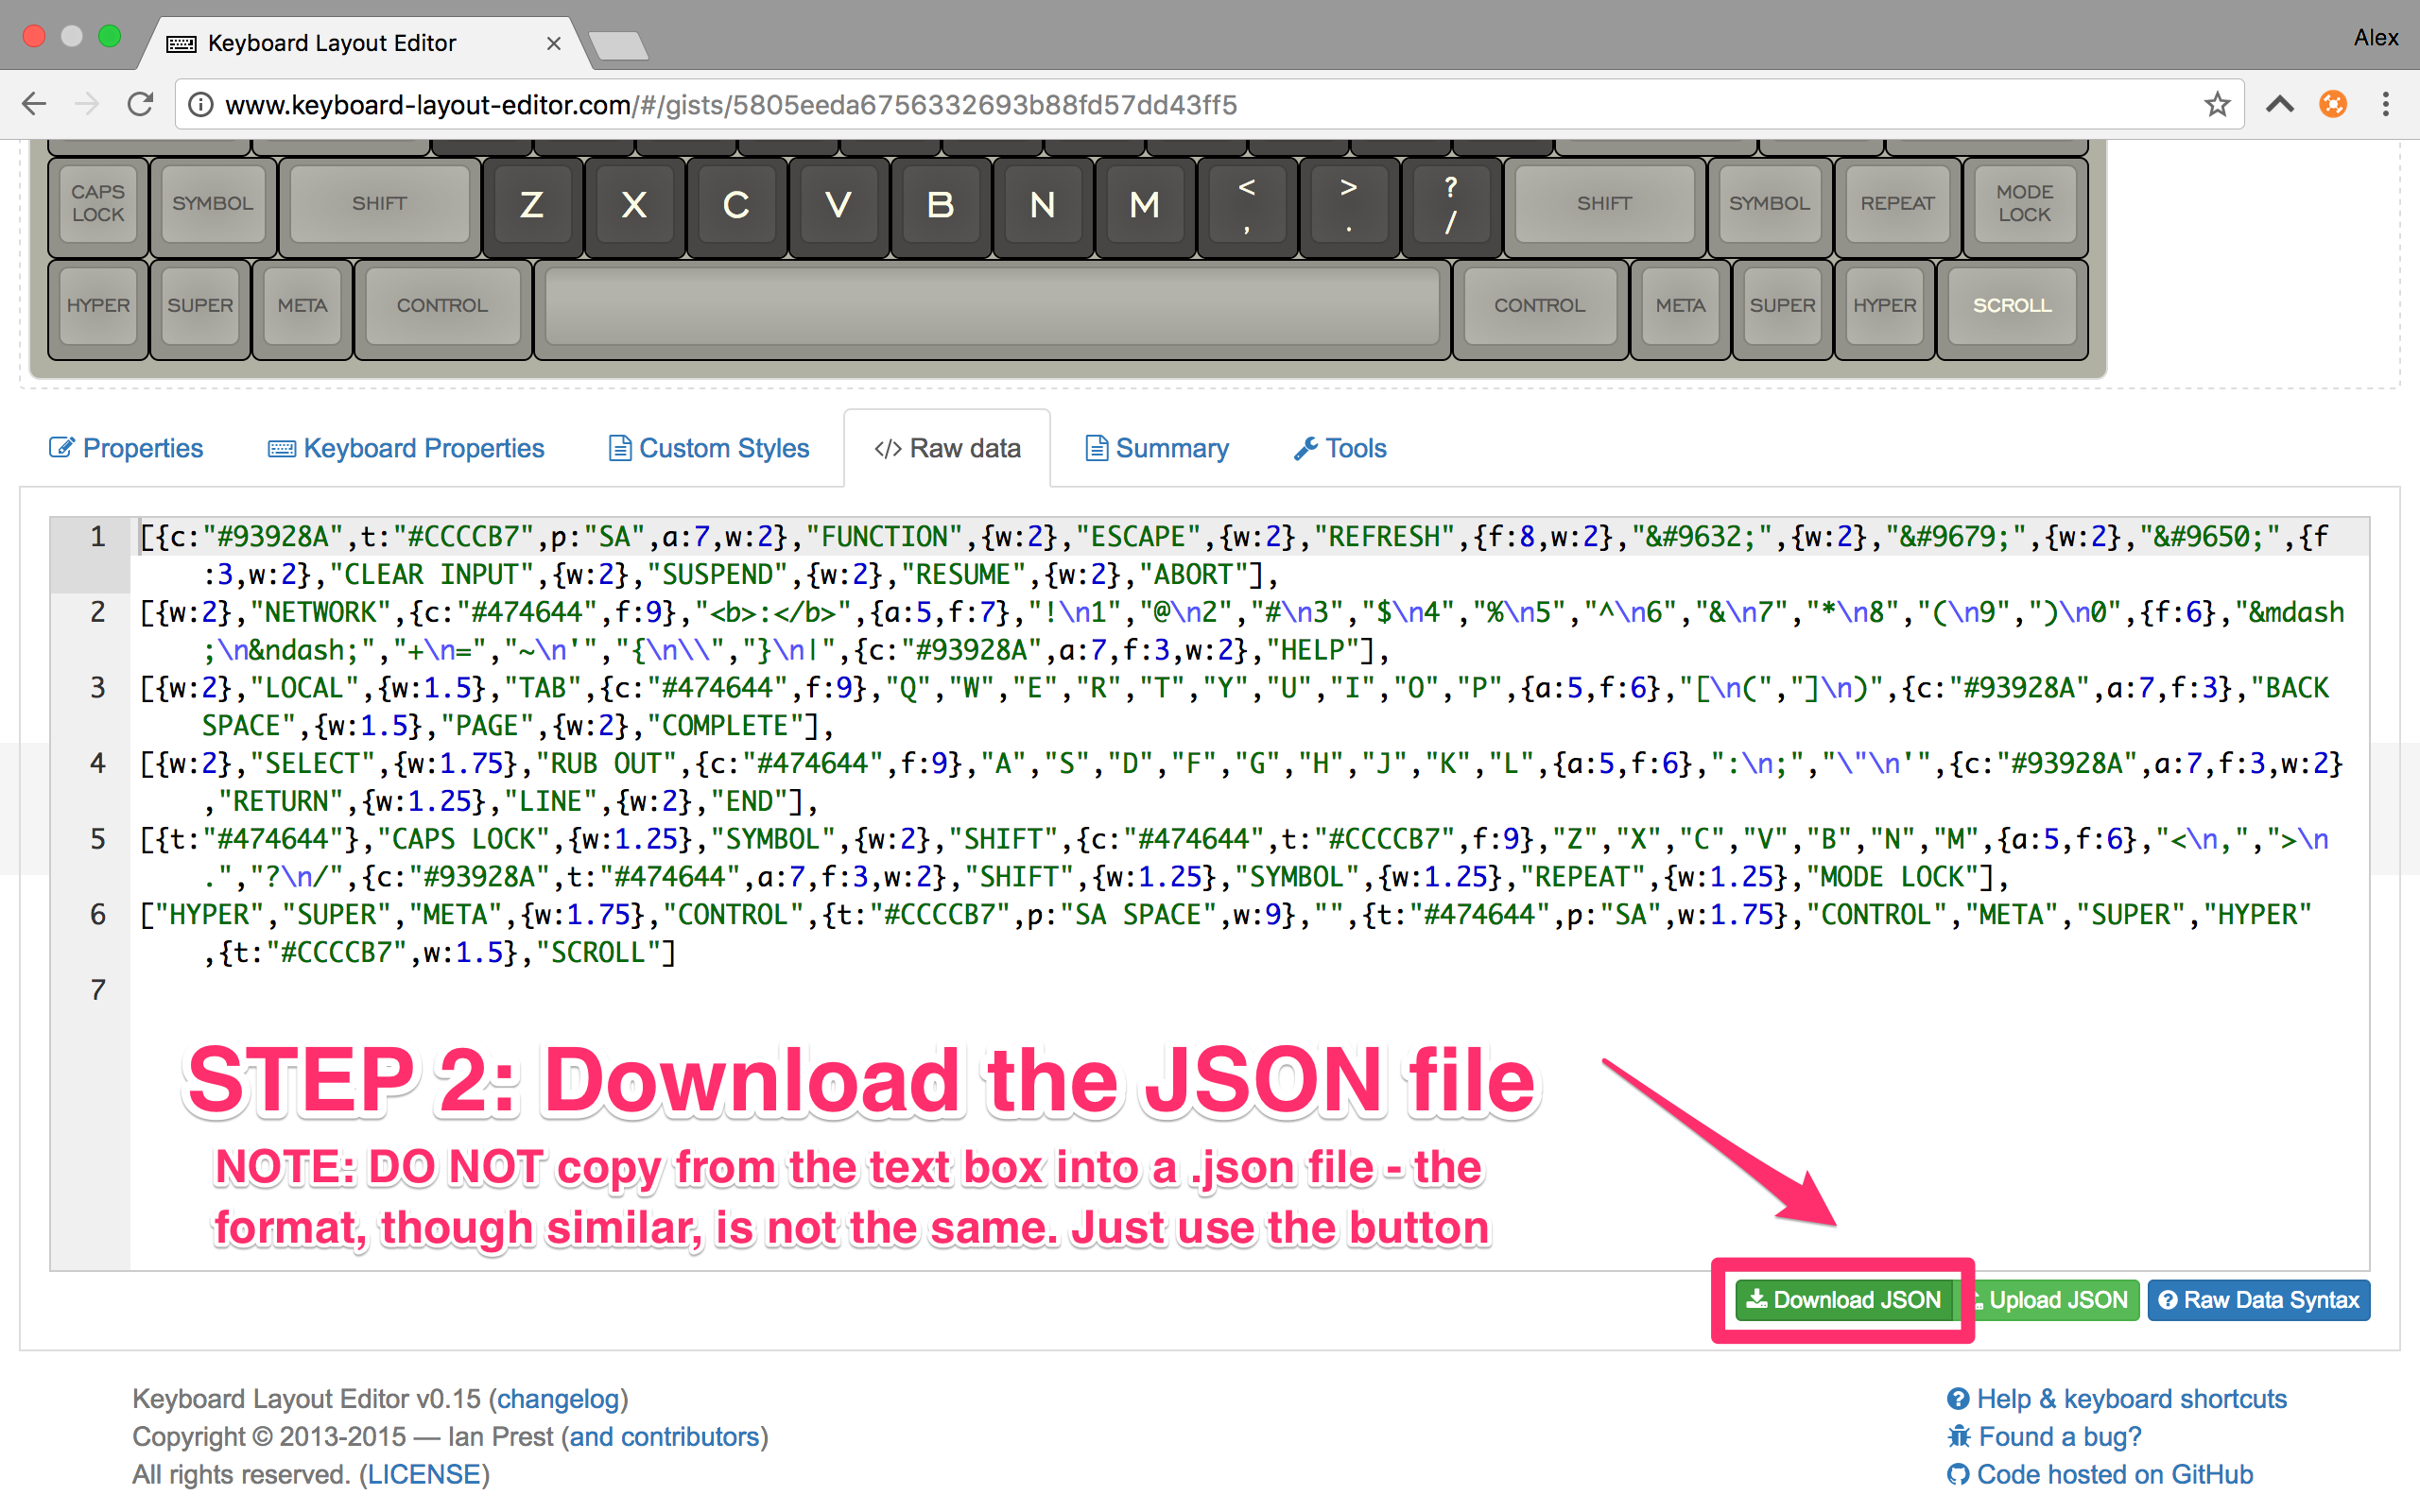 Step 2: Download the JSON file